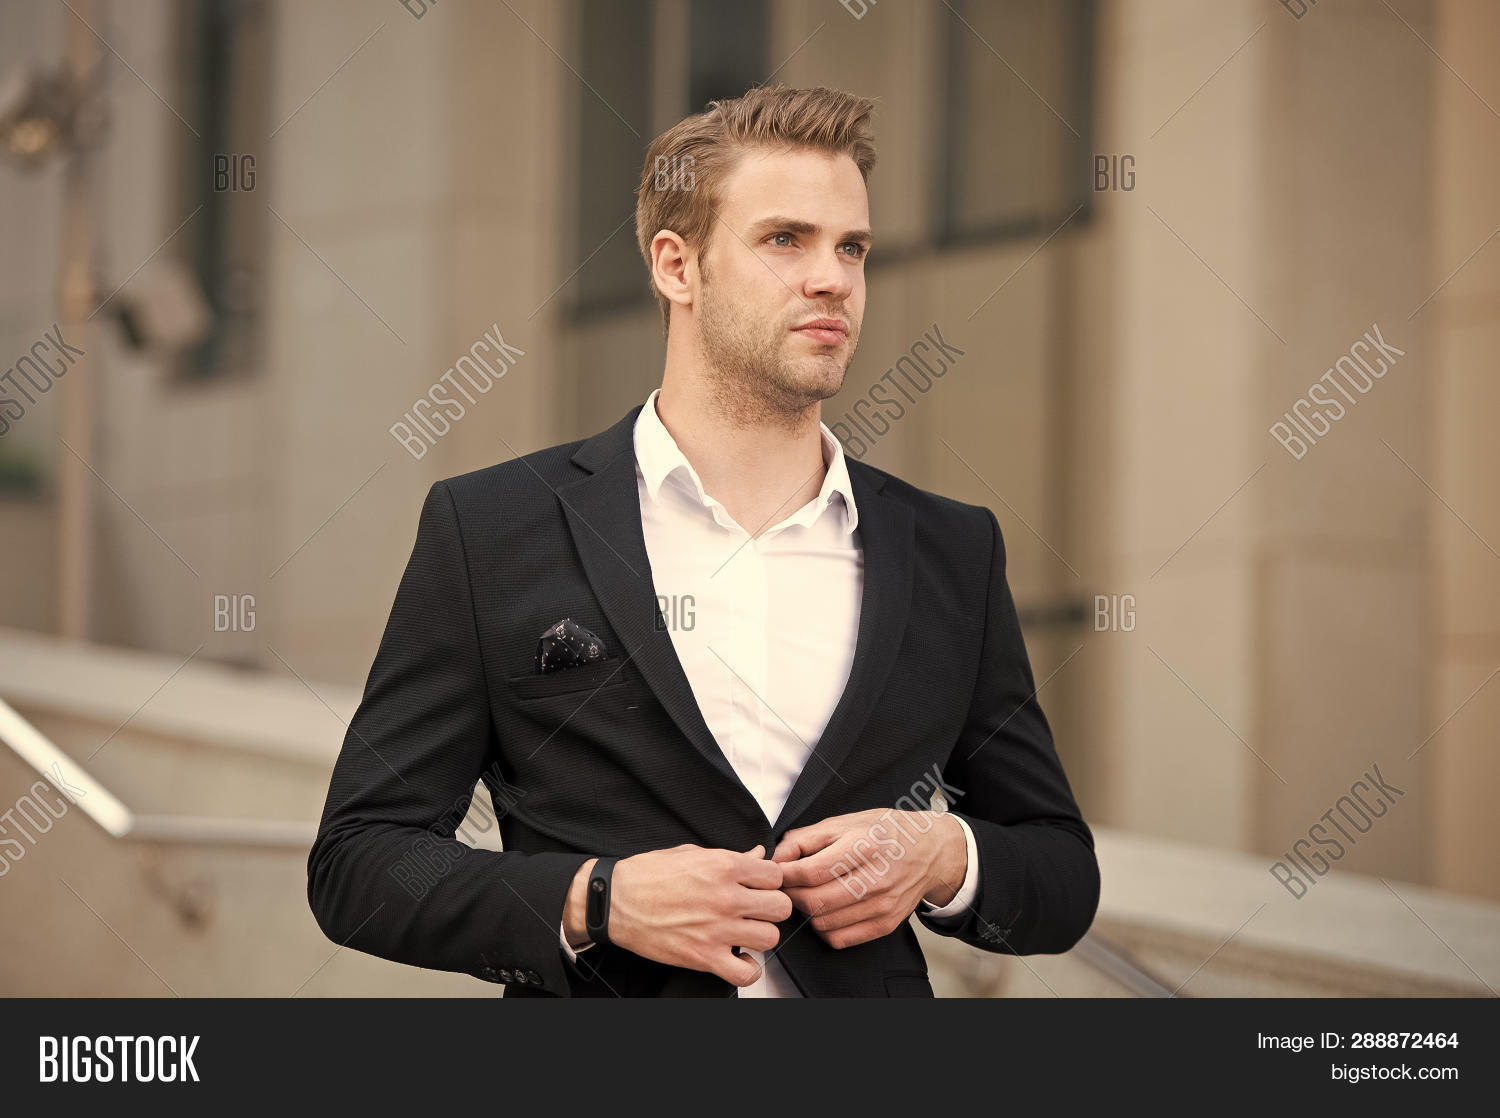 appearance,attire,attractive,background,business,businessman,clothes,clothing,concentrated,confident,culture,decorum,defocused,dress,environments,fashion,fashionable,formal,garment,groomed,guy,hairstyle,handsome,look,man,menswear,modern,organization,outdoor,outfit,professional,professionalism,sharp,shirt,style,stylish,successful,suit,uniform,urban,wardrobe,wear,well,woven,young